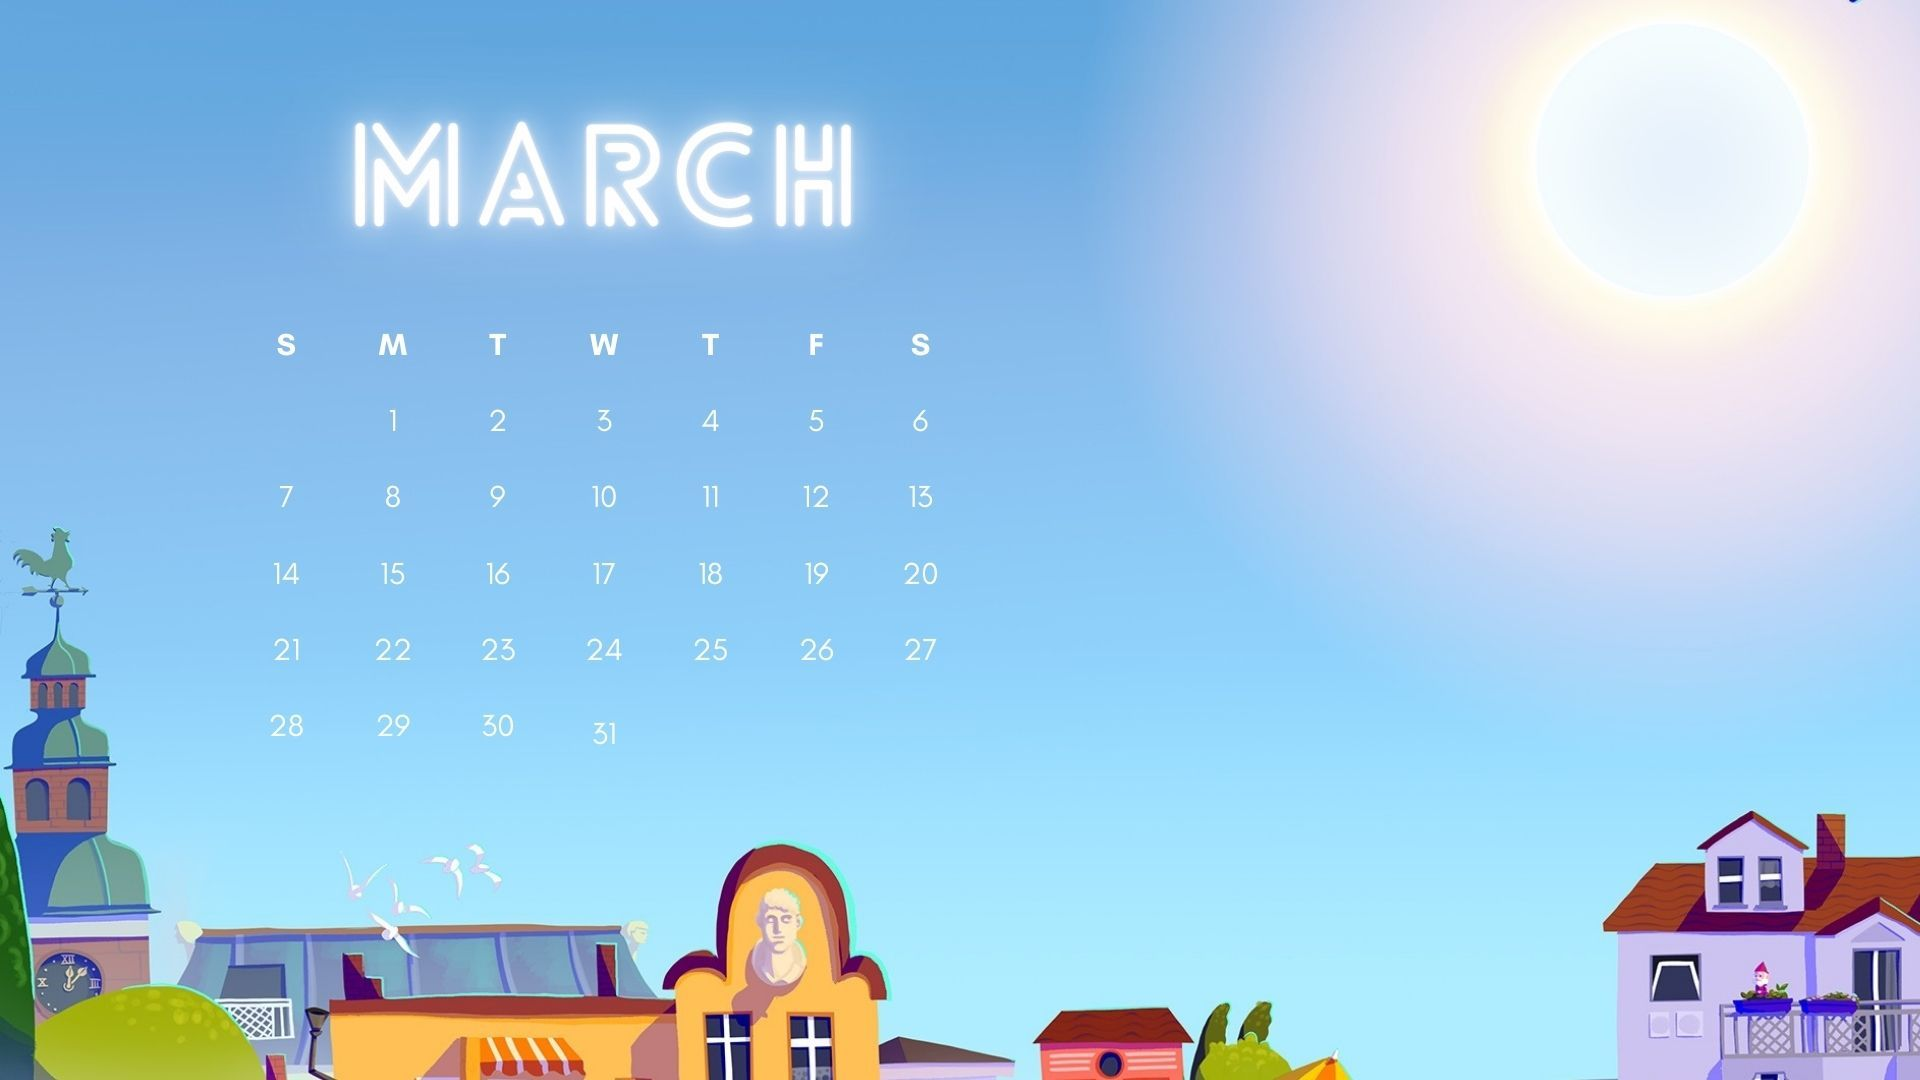 download March 2021 calendar wallpaper Calendar wallpaper